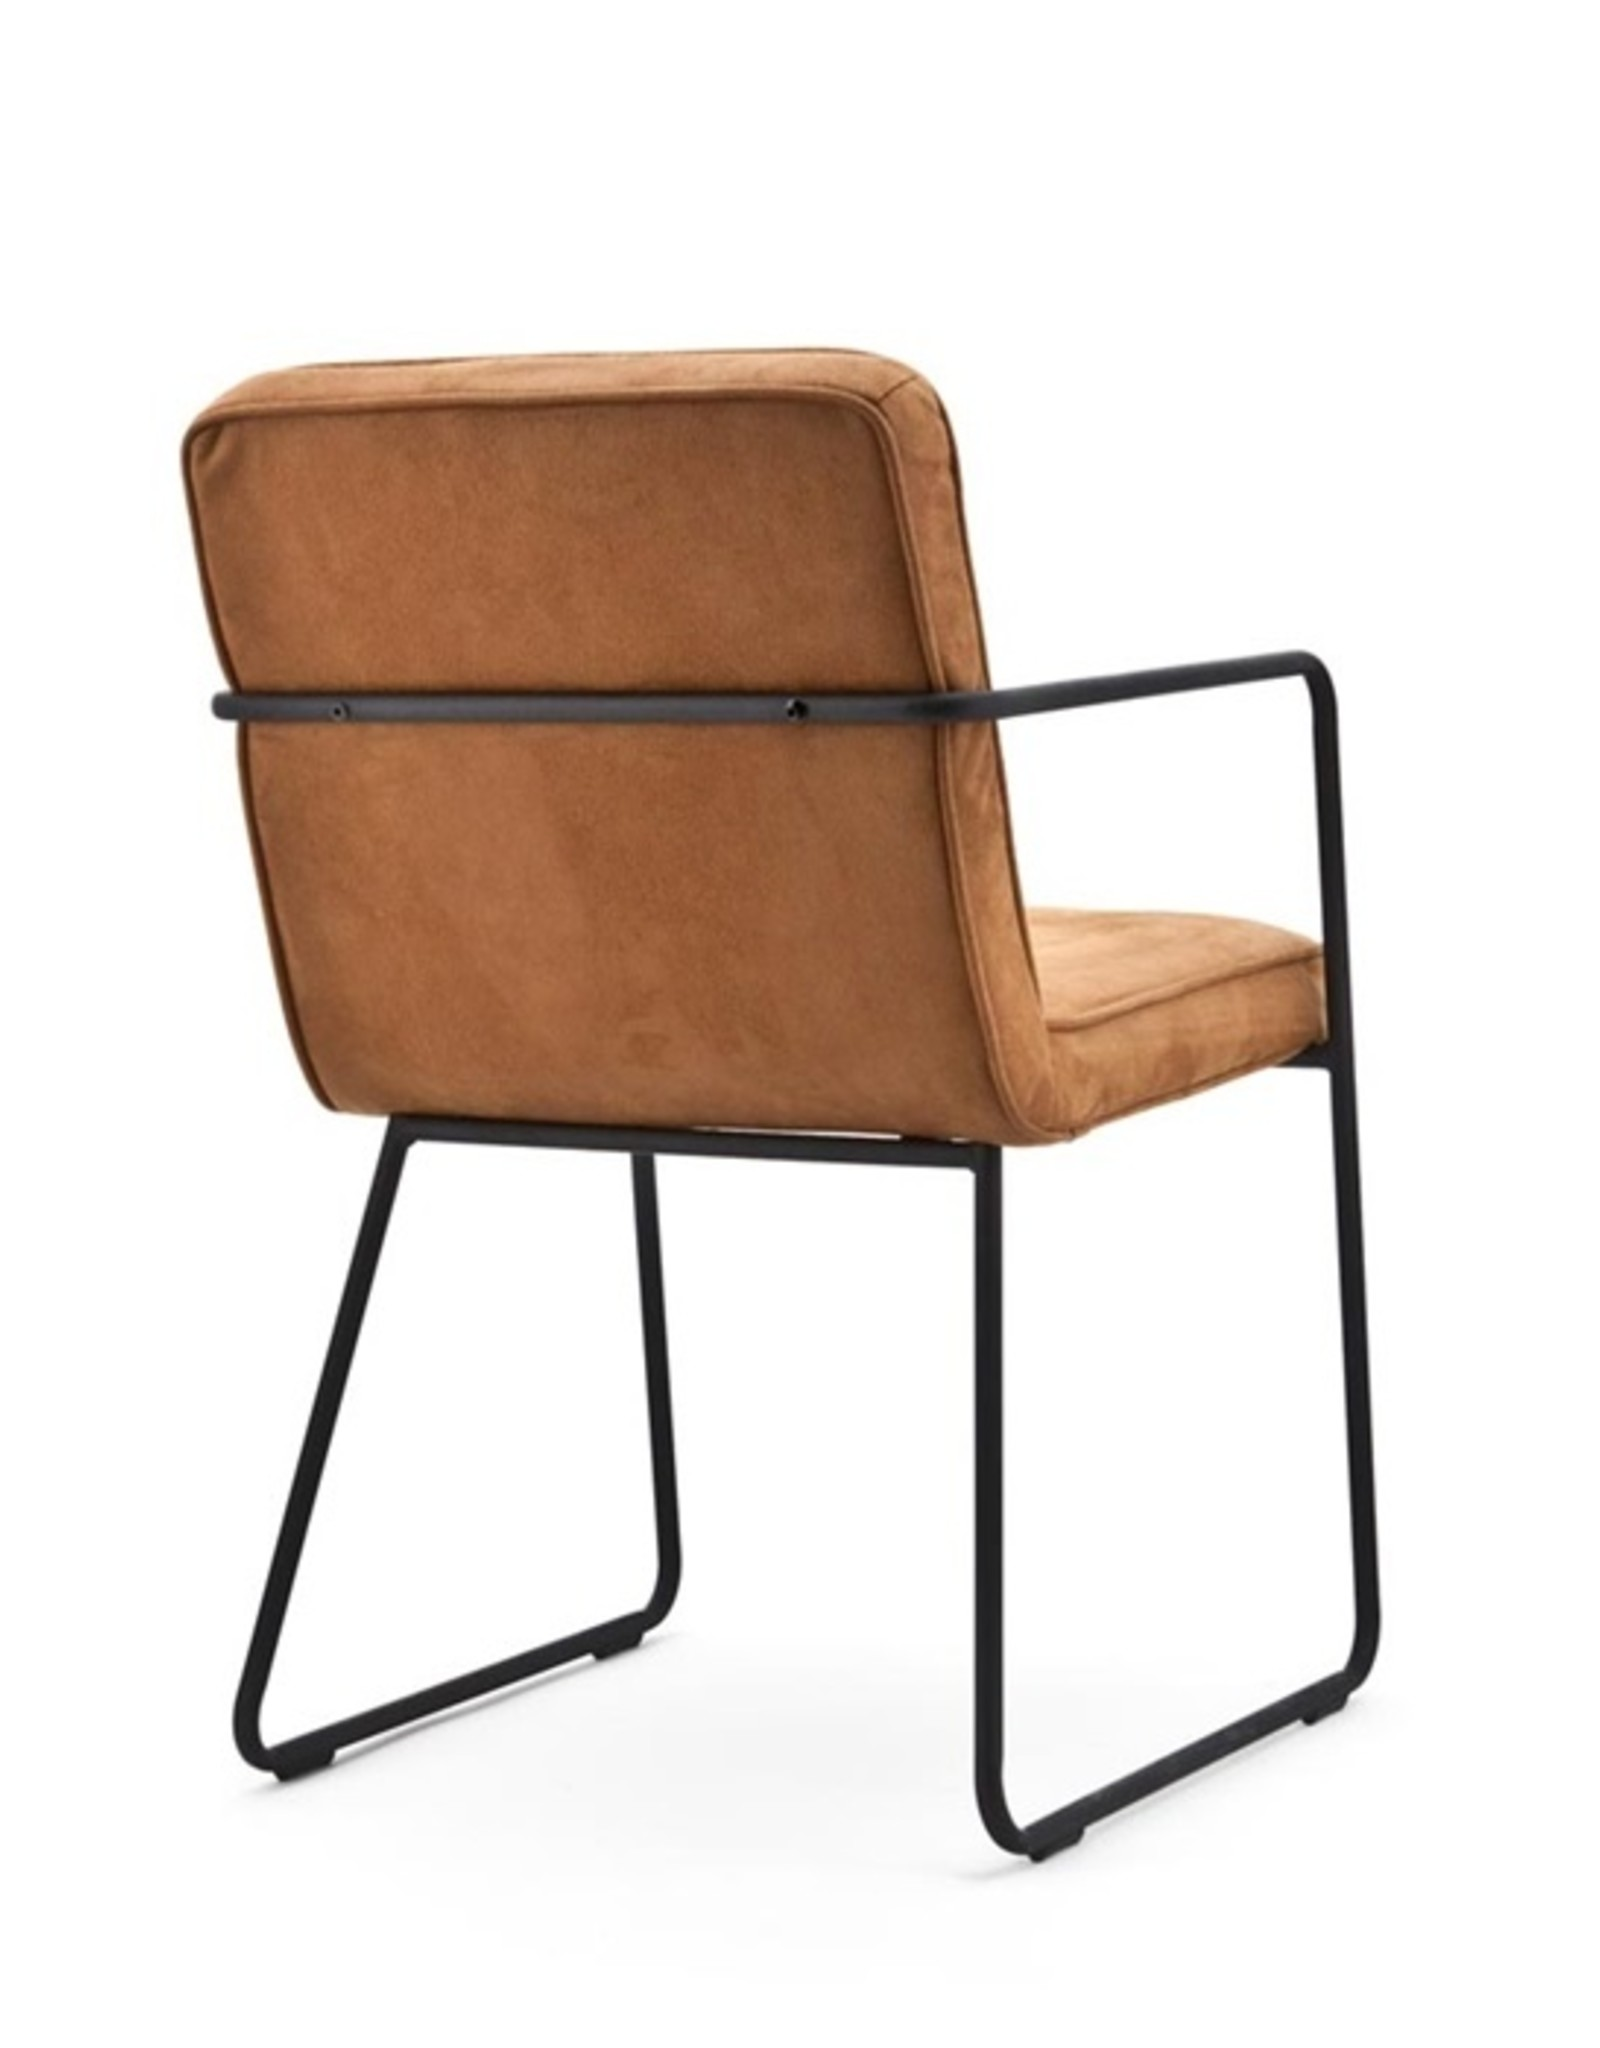 By-Boo Chair Amber - cognac